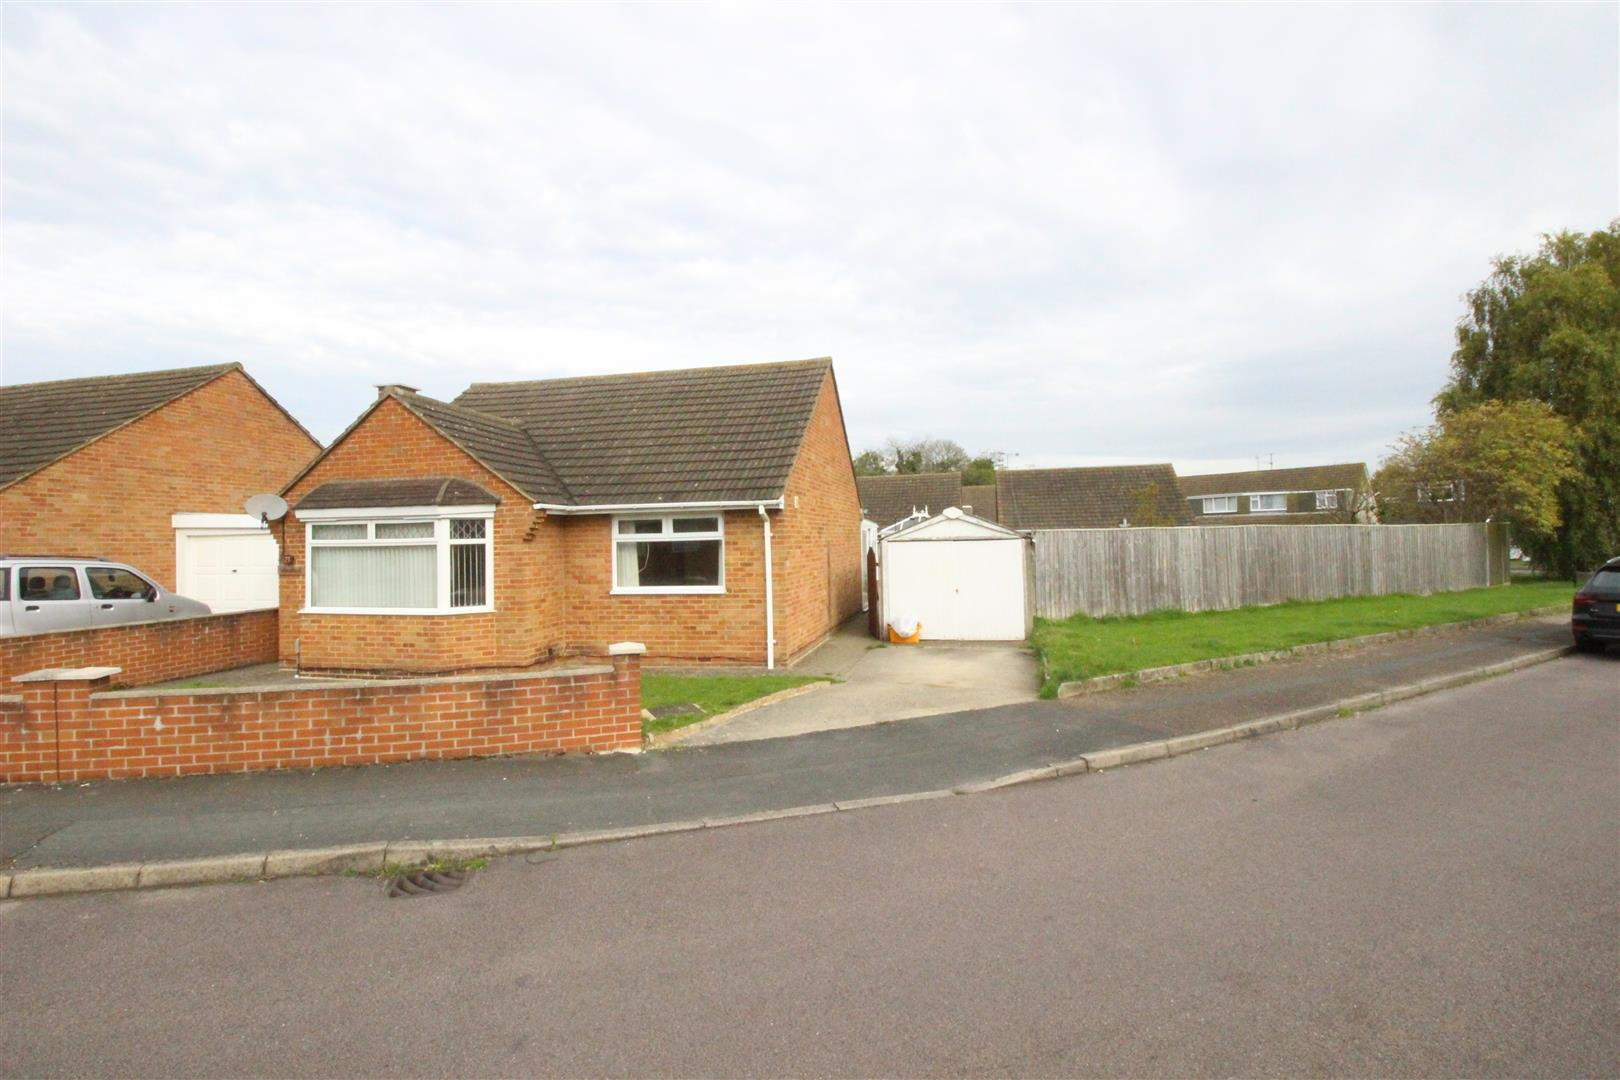 2 Bedrooms Bungalow for sale in Abington Way, Queensfield, Swindon